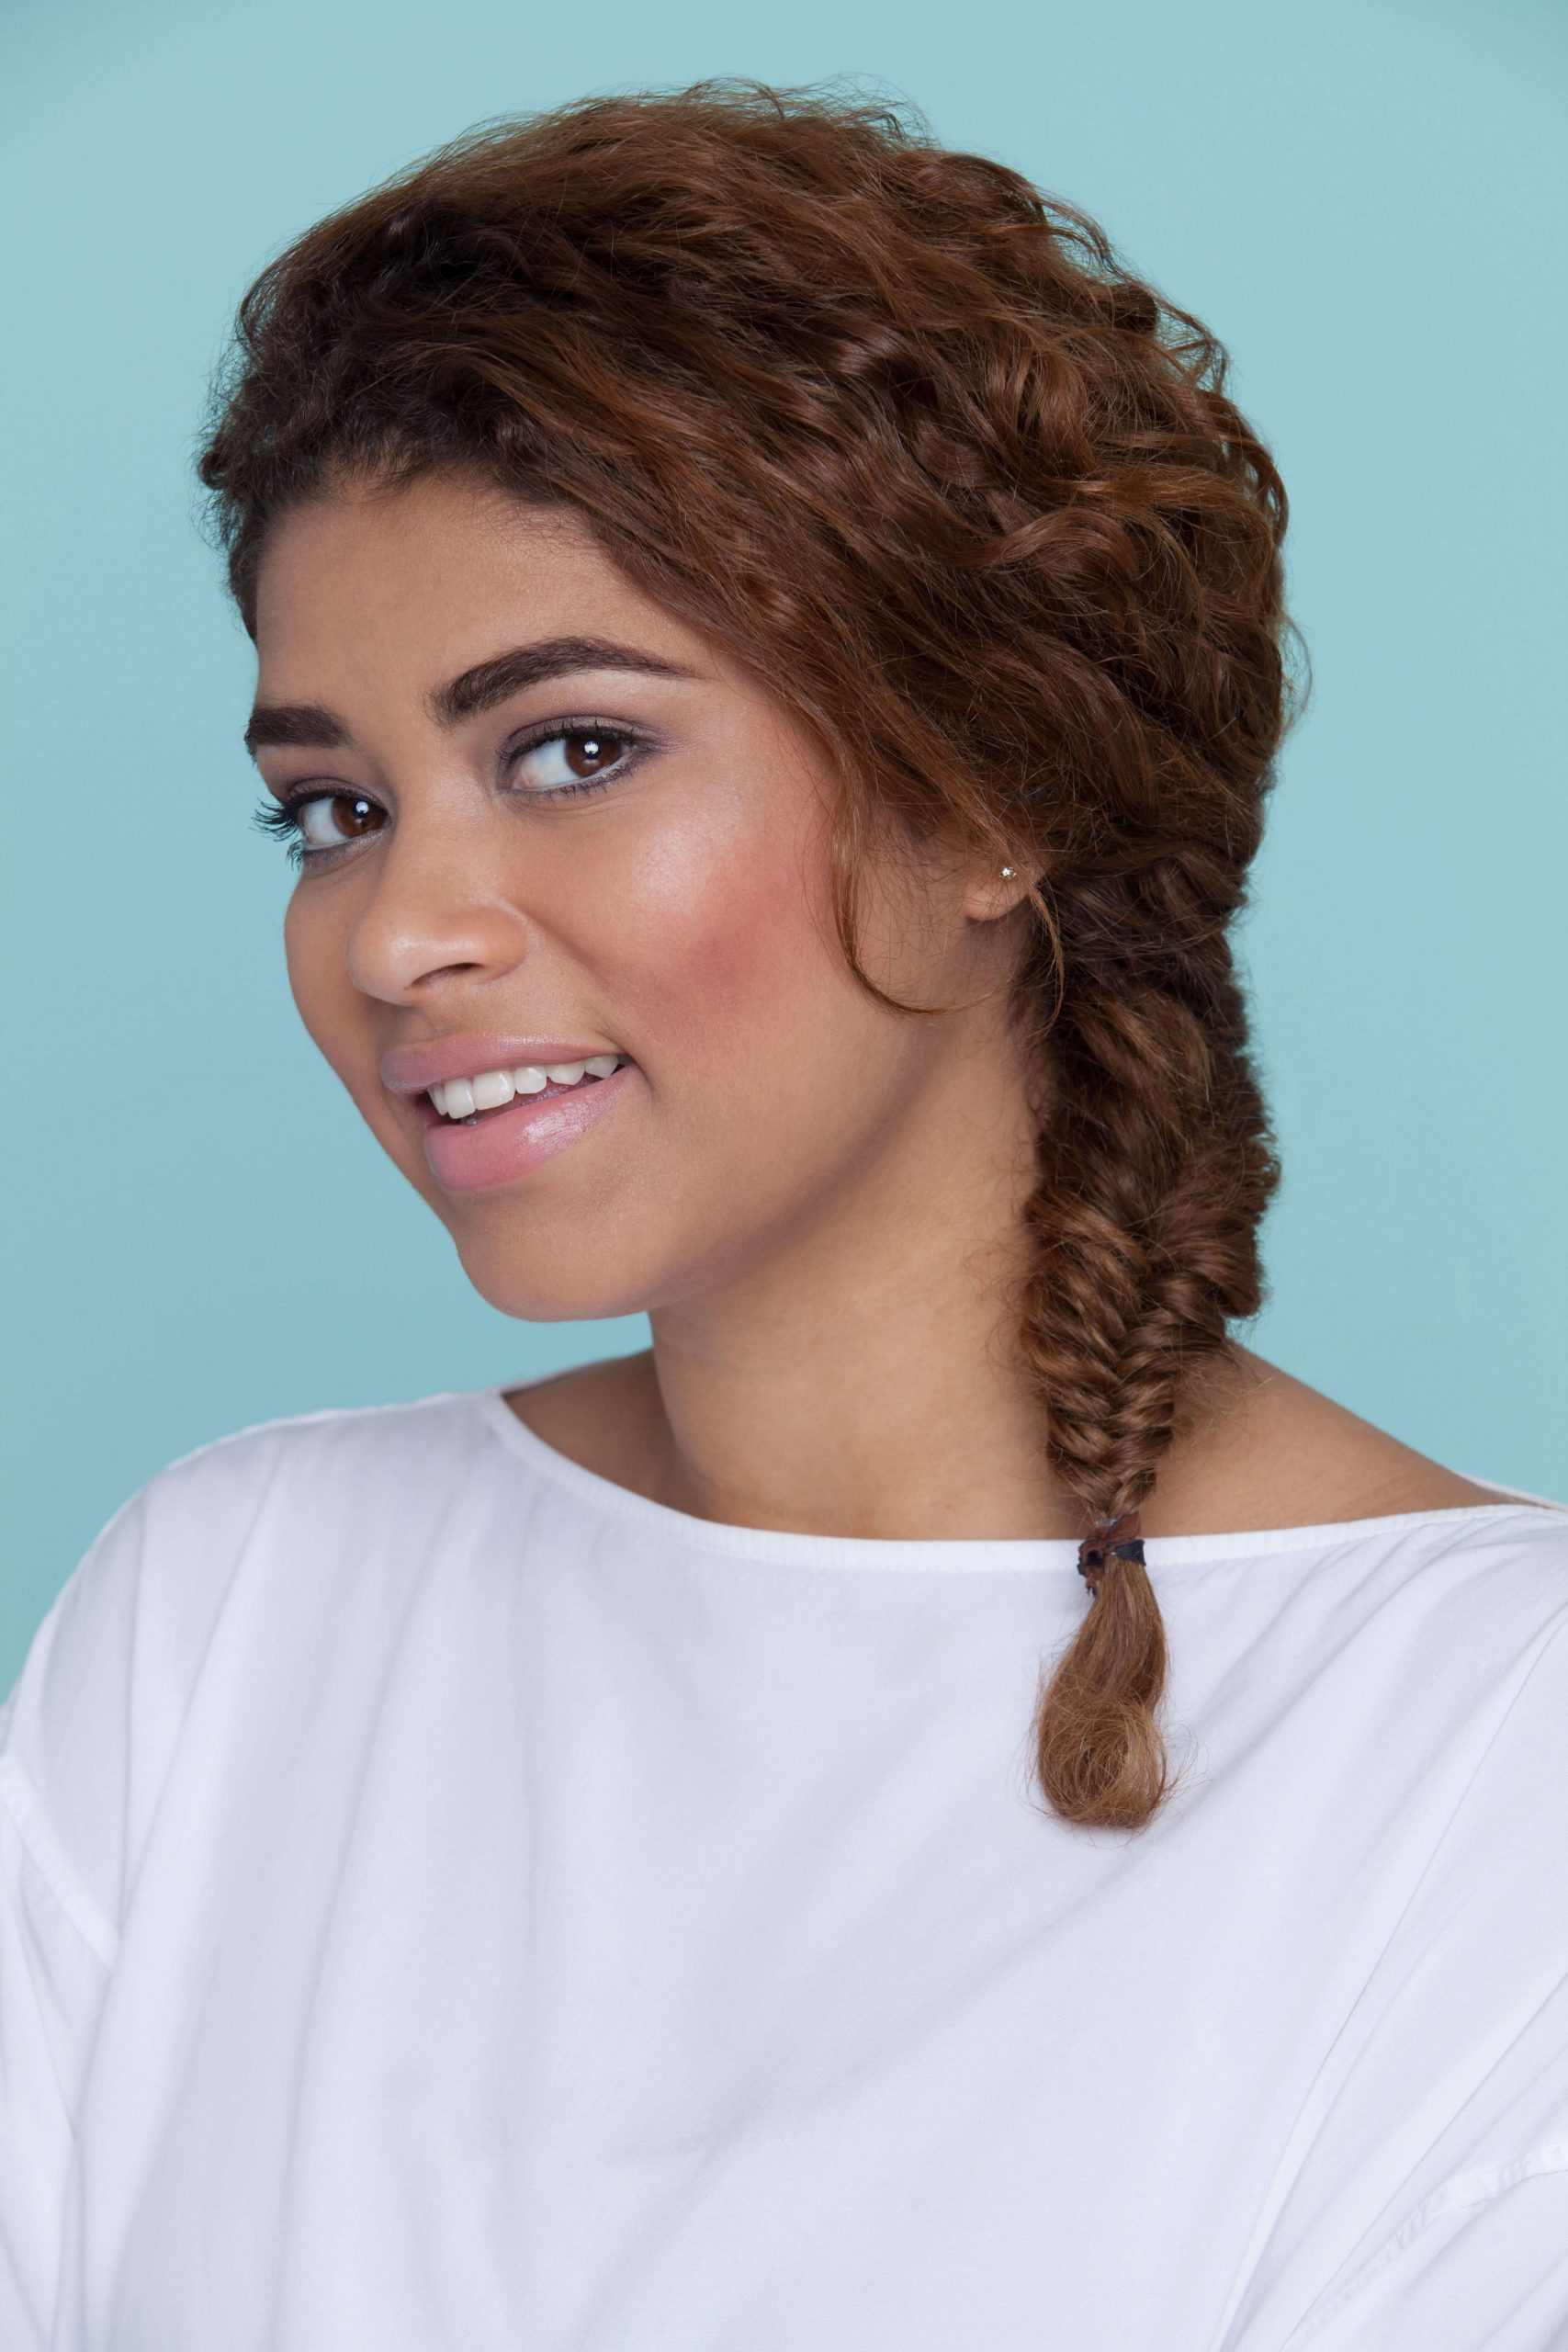 Thick Curly Hair: 8 Easy And Modern Hairstyles We Love Cute Hairstyles For Thick Curly Hair